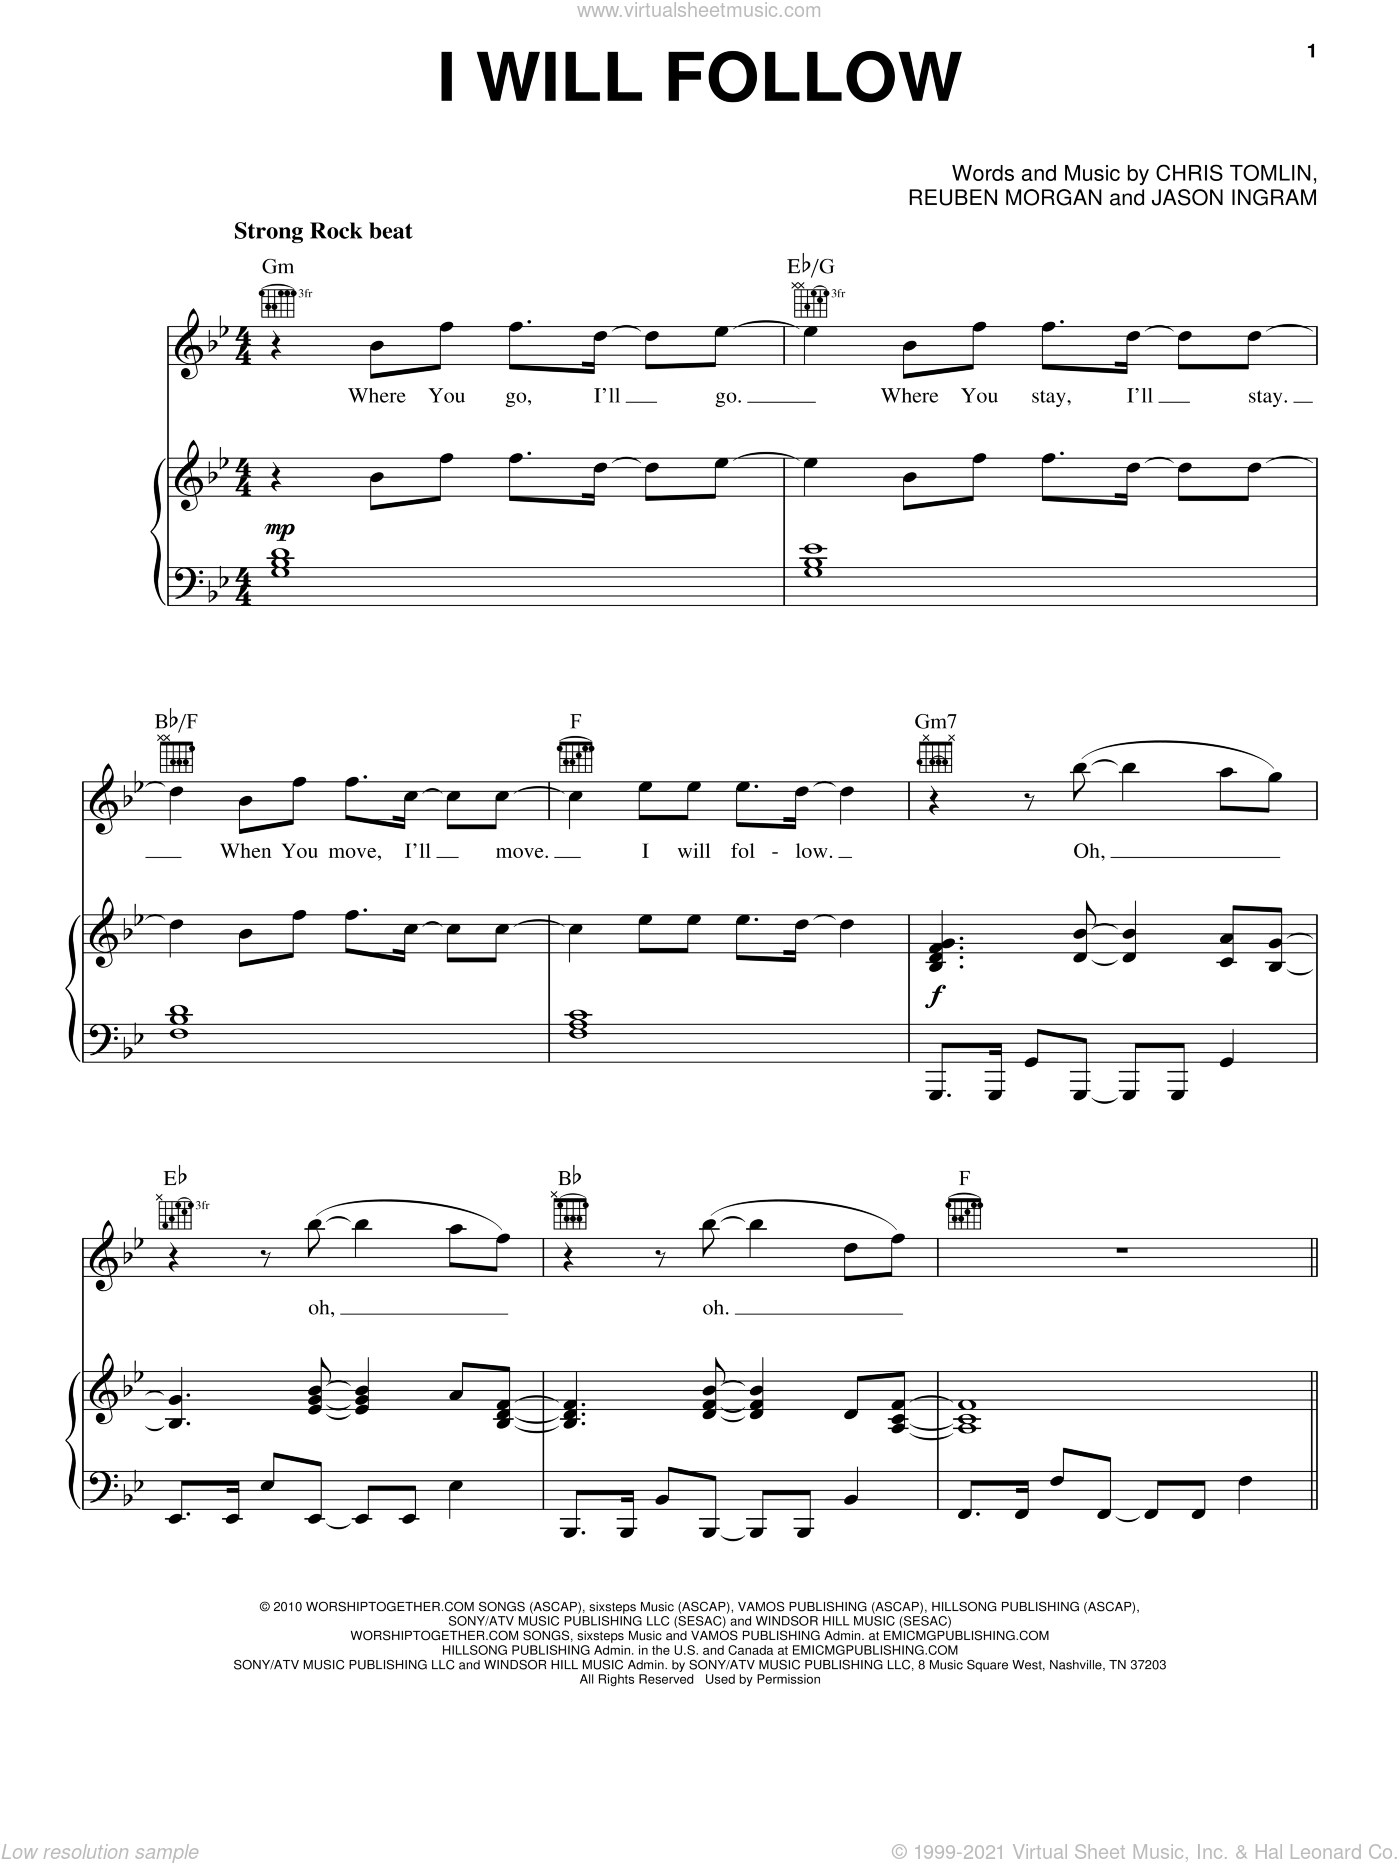 I Will Follow sheet music for voice, piano or guitar by Reuben Morgan, Chris Tomlin and Jason Ingram. Score Image Preview.